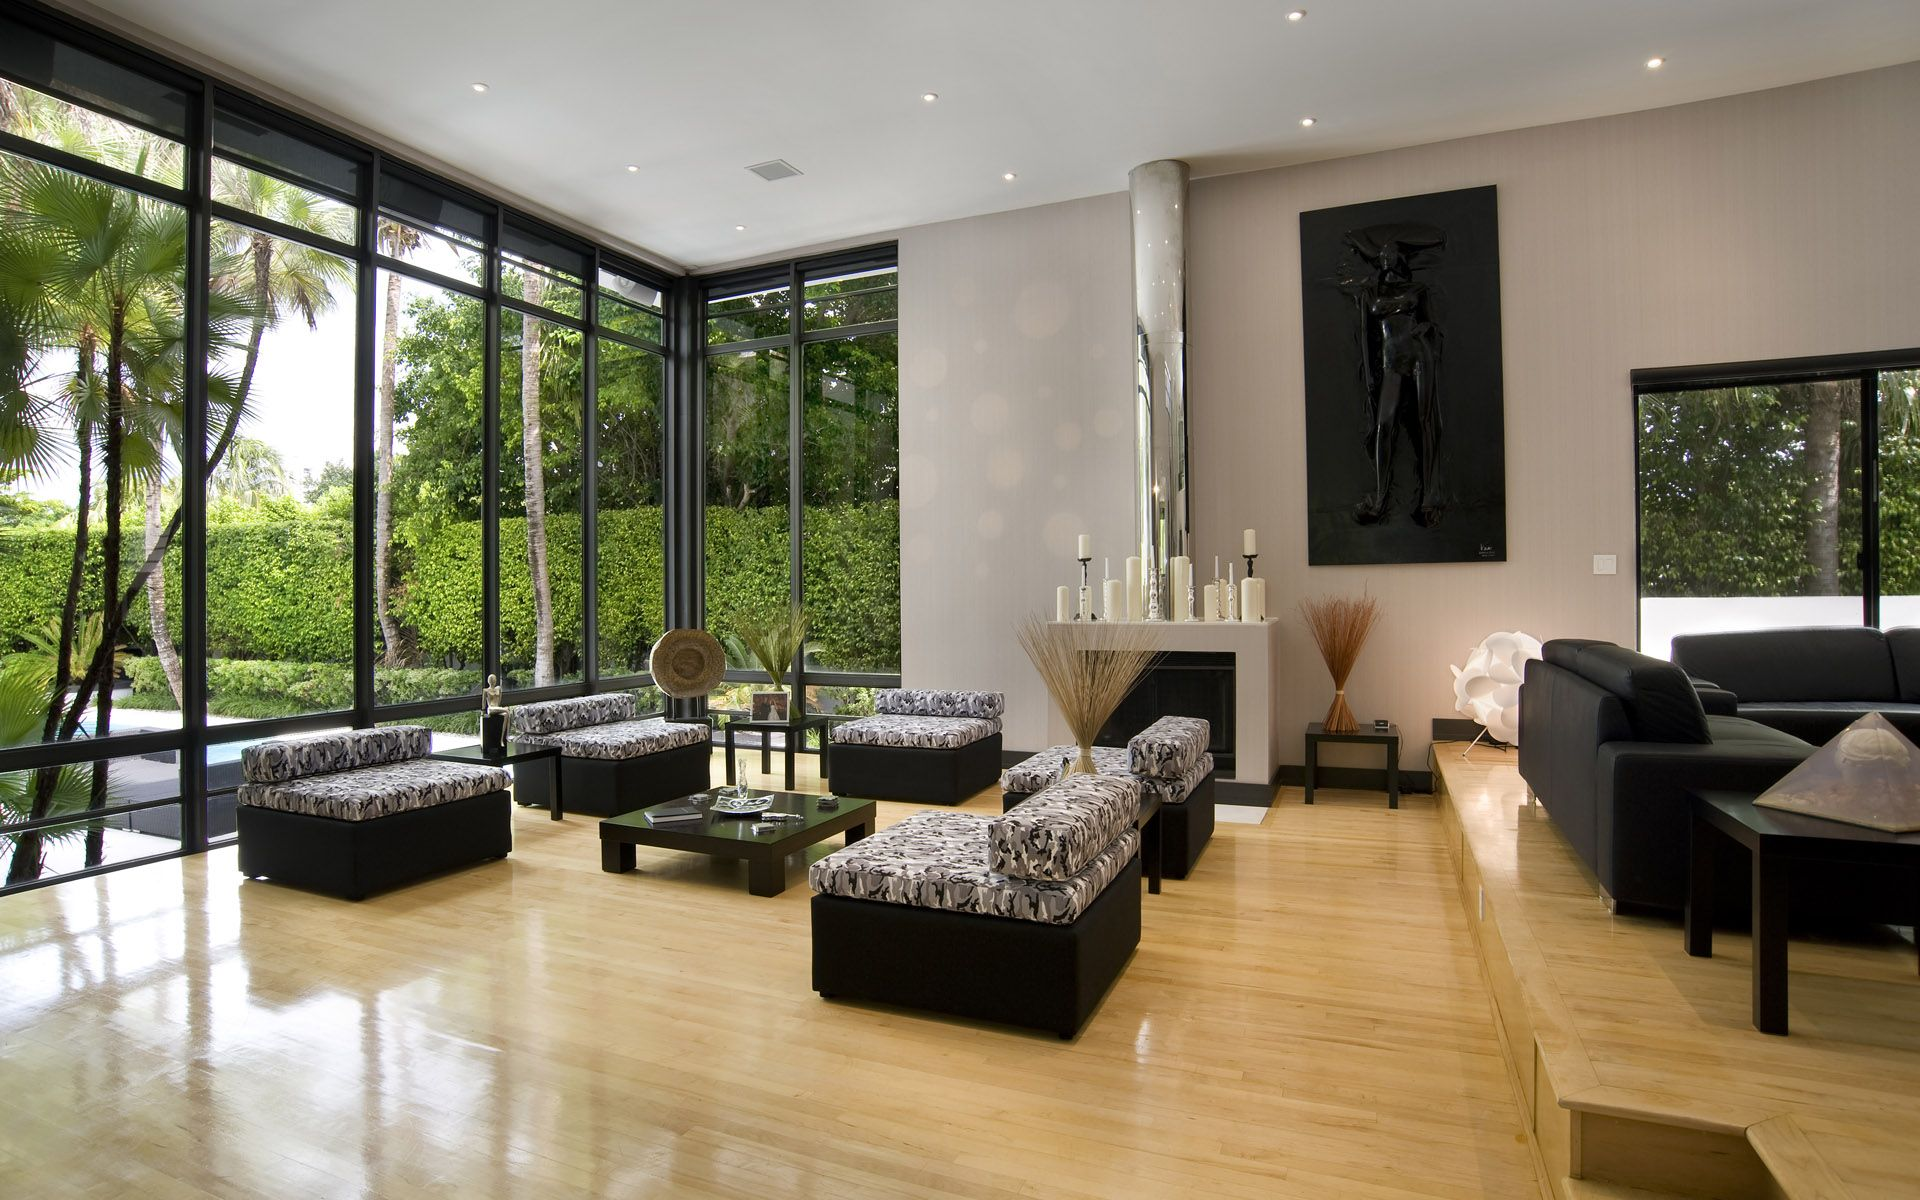 Pin On Living Room Ideas Living room means what